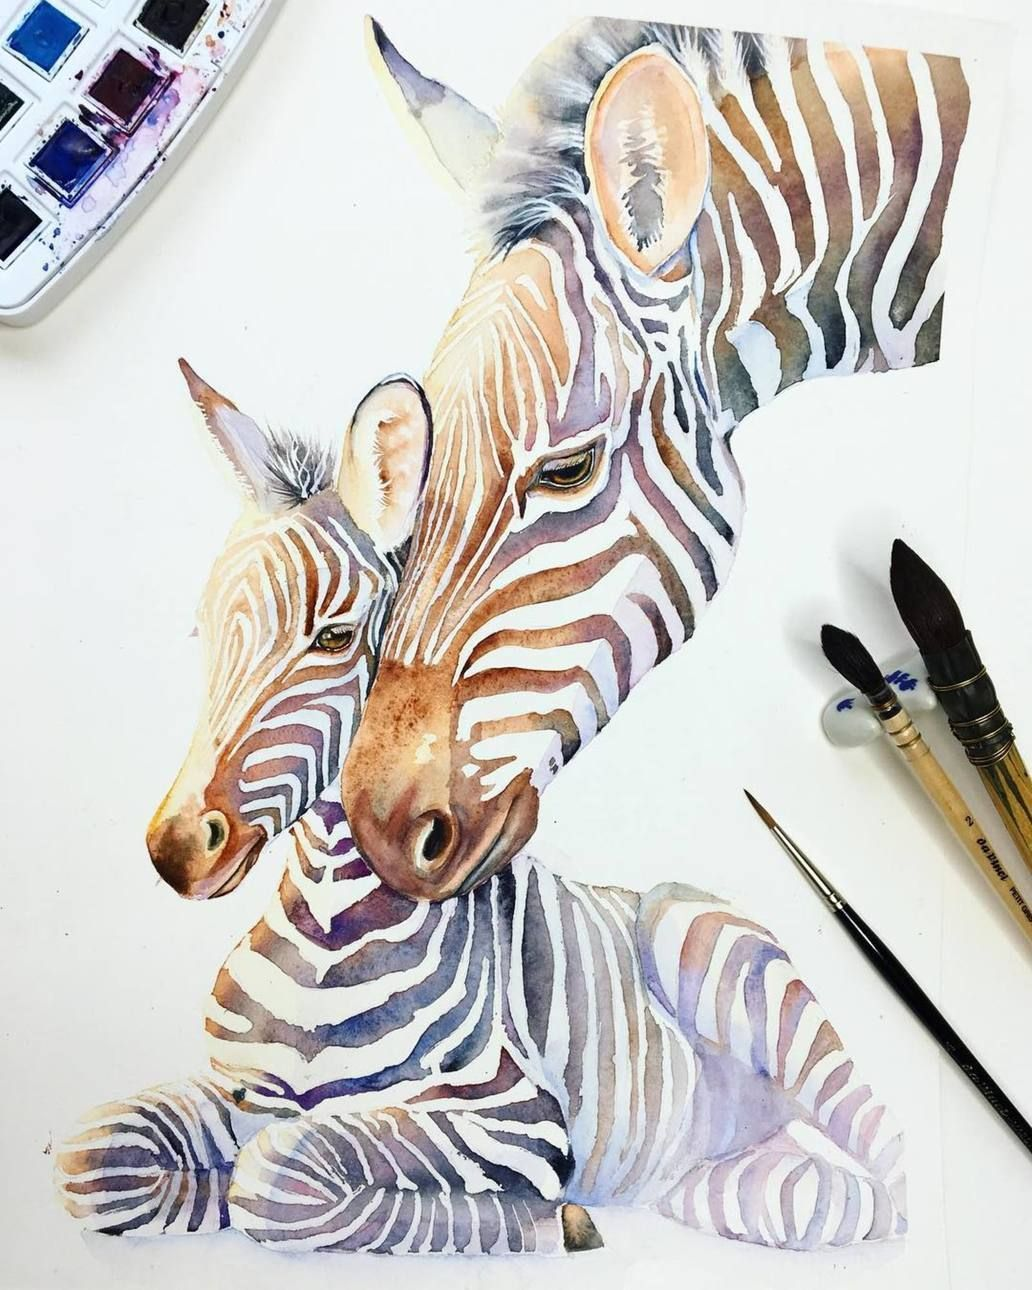 Image May Contain Stripes Zebra Art Zebra Painting Watercolor